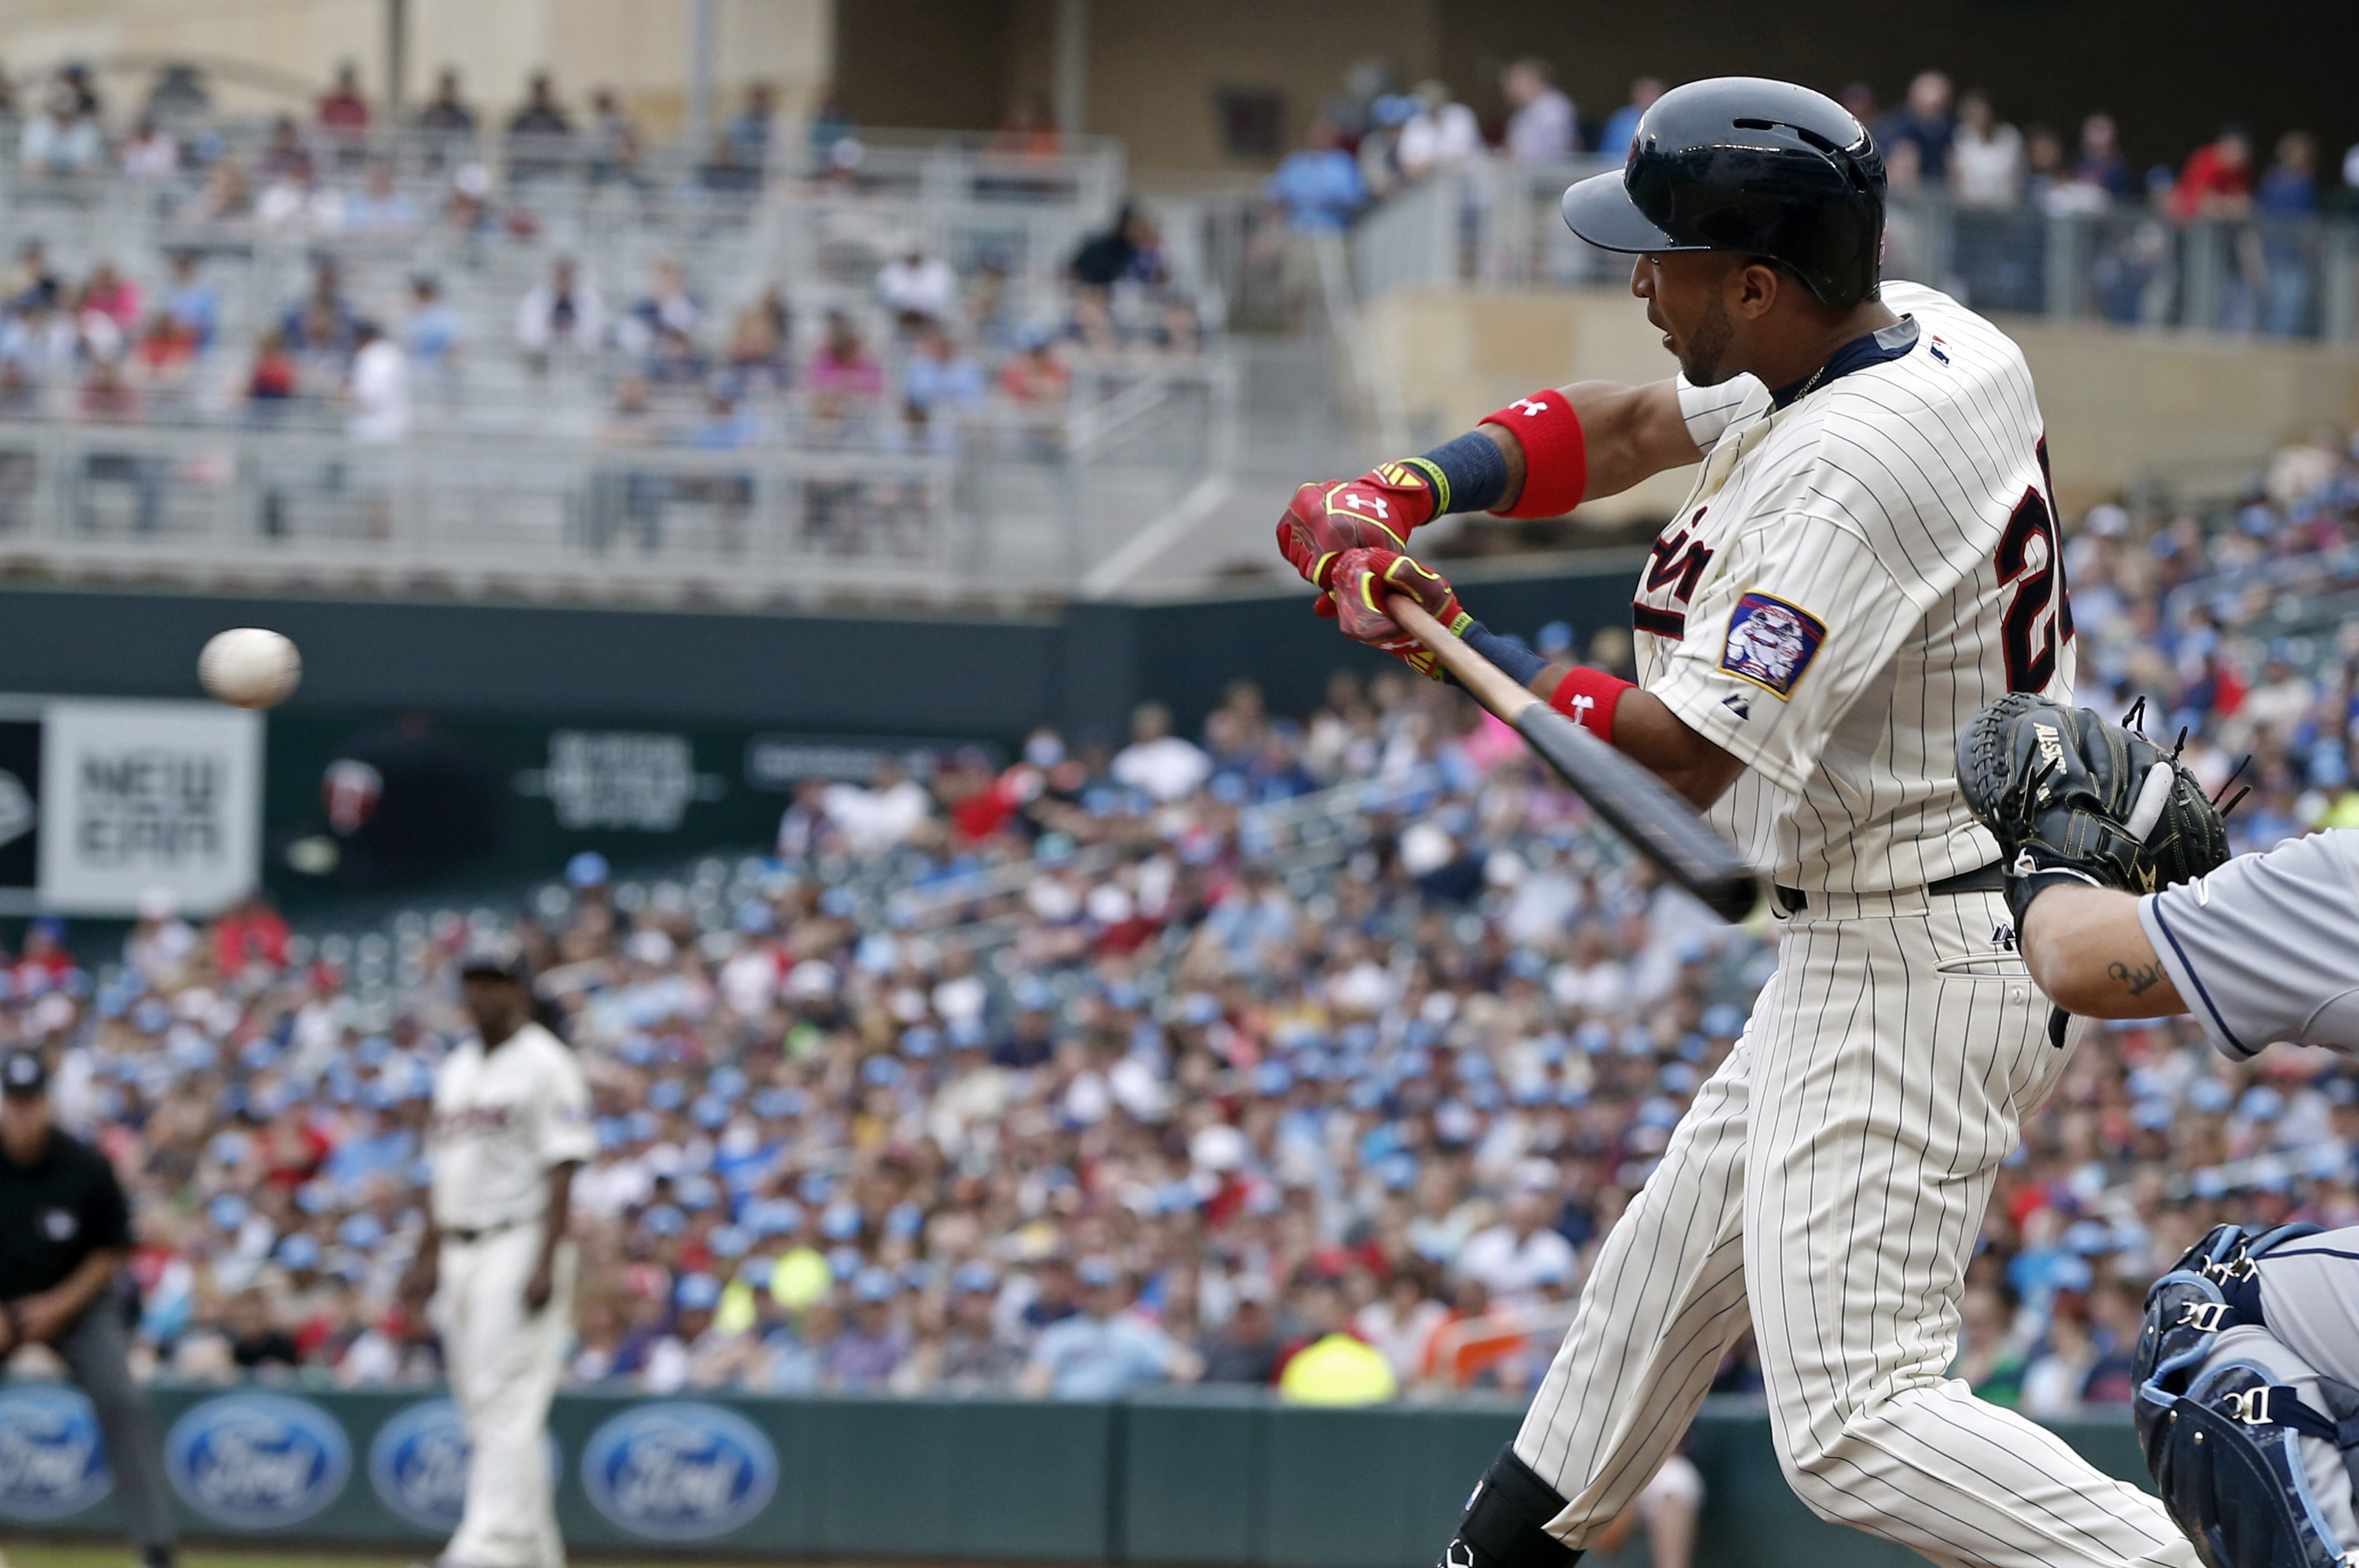 Minnesota Twins' Eddie Rosario swings as the ball comes to him and connects with an RBI single off Tampa Bay Rays pitcher Alex Colome in the second inning of a baseball game, Saturday, May 16, 2015, in Minneapolis. (AP Photo/Jim Mone)